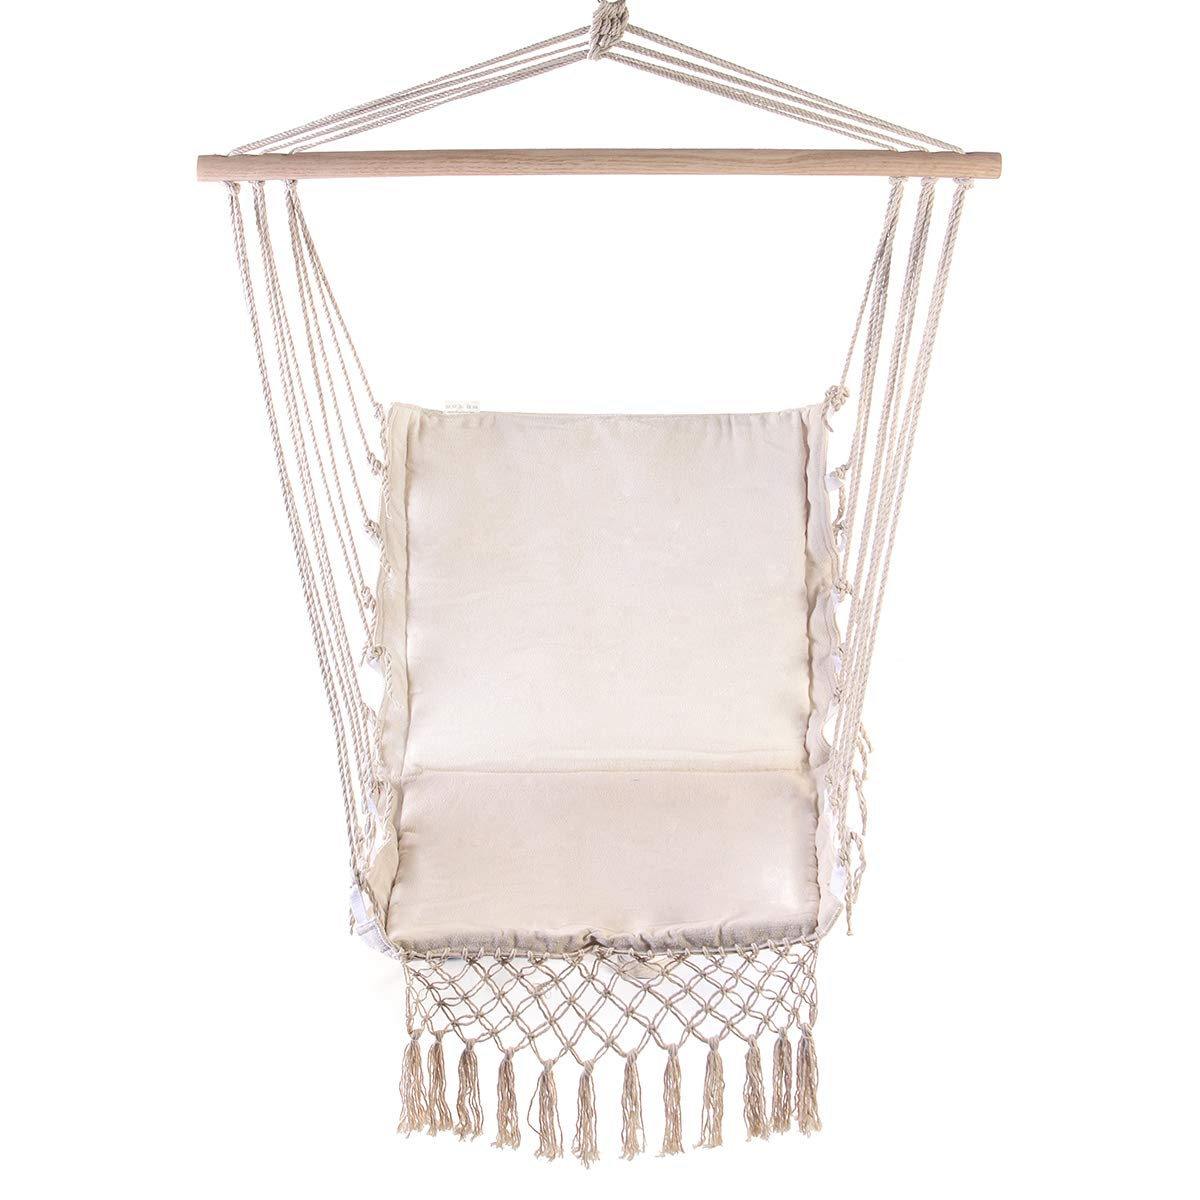 Amazon.com : Romantic Fringed Macrame Swing Chair Hanging Rope Chair Seat for Outdoor Indoor Garden Dormitory Bedroom Hanging Chair for Child Adult Swinging ...